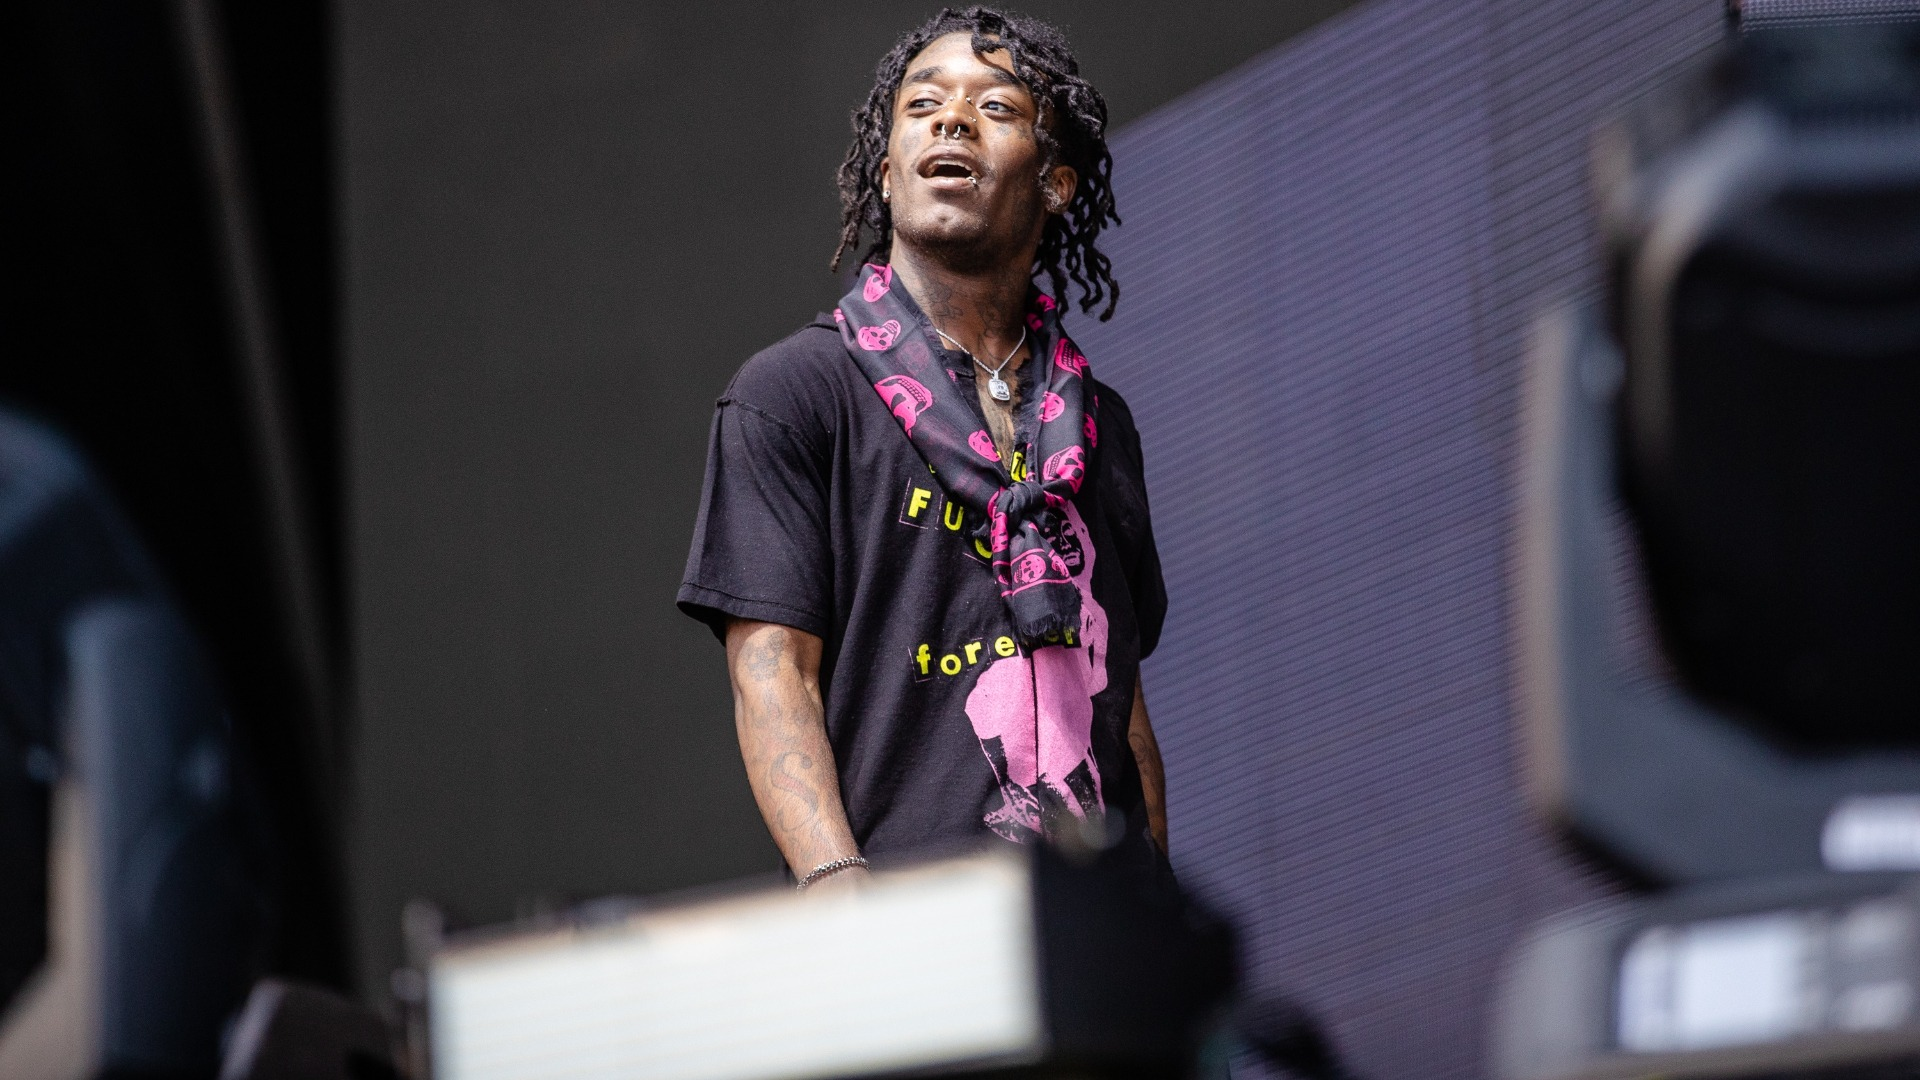 Watch Lil Uzi Vert Freestyle With a Fan at a Gas Station